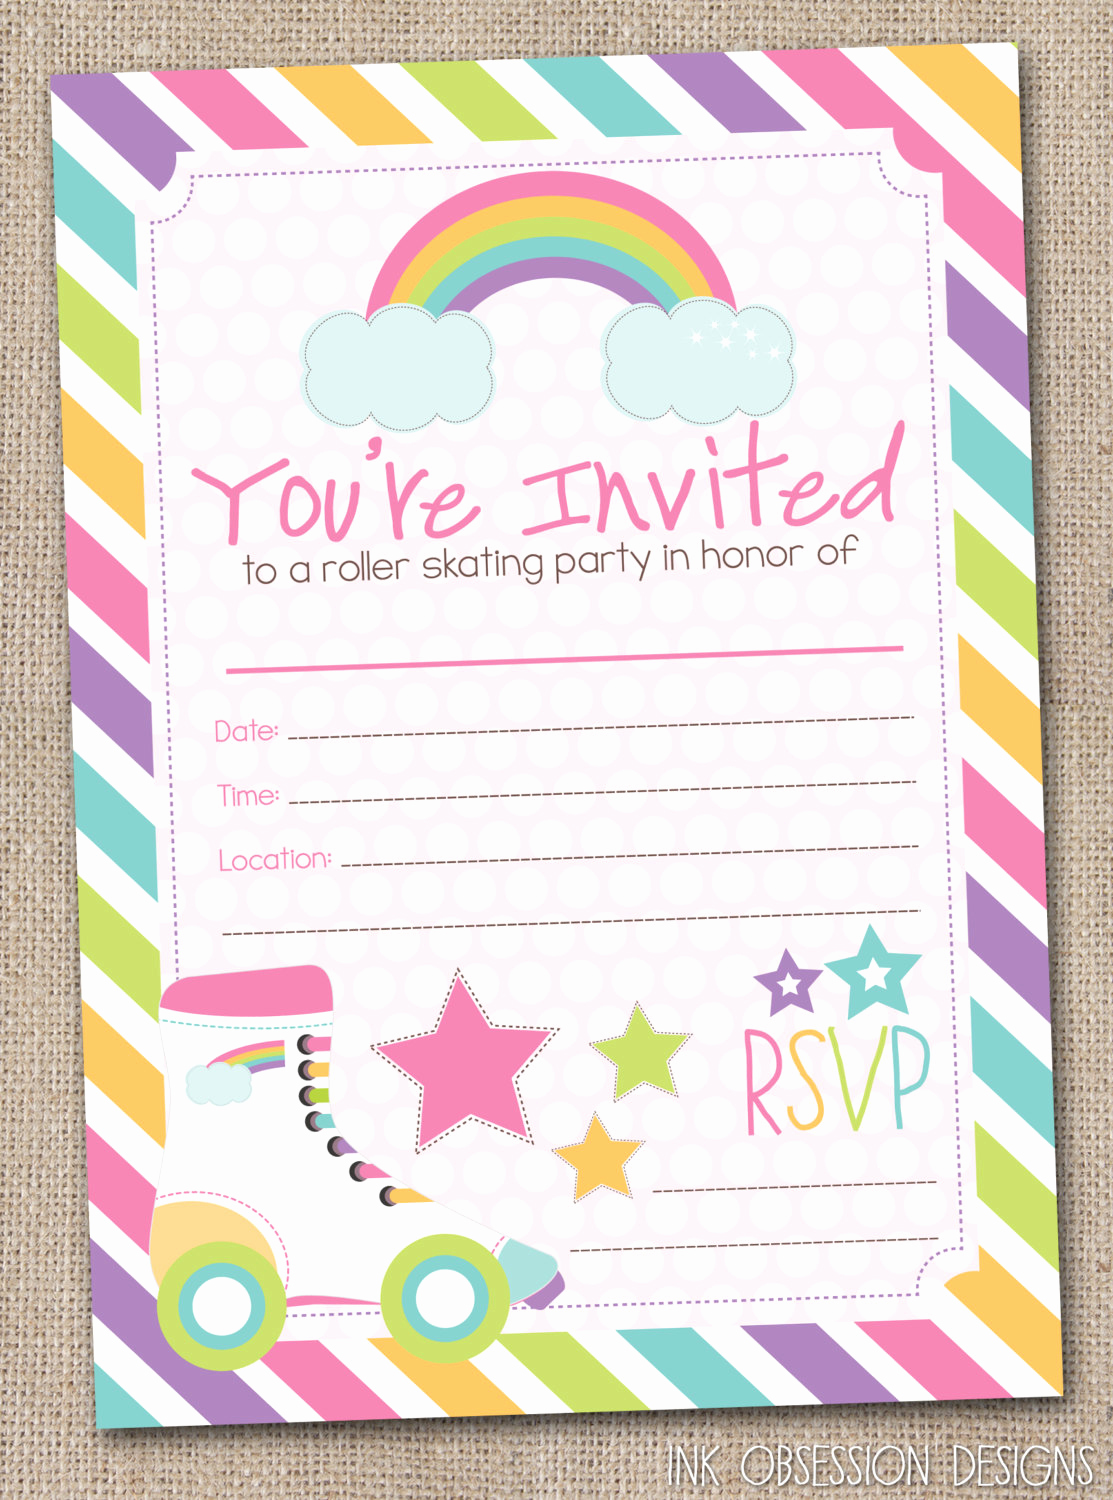 Skating Party Invitation Template Beautiful Fill In Roller Skating Party Invitations by